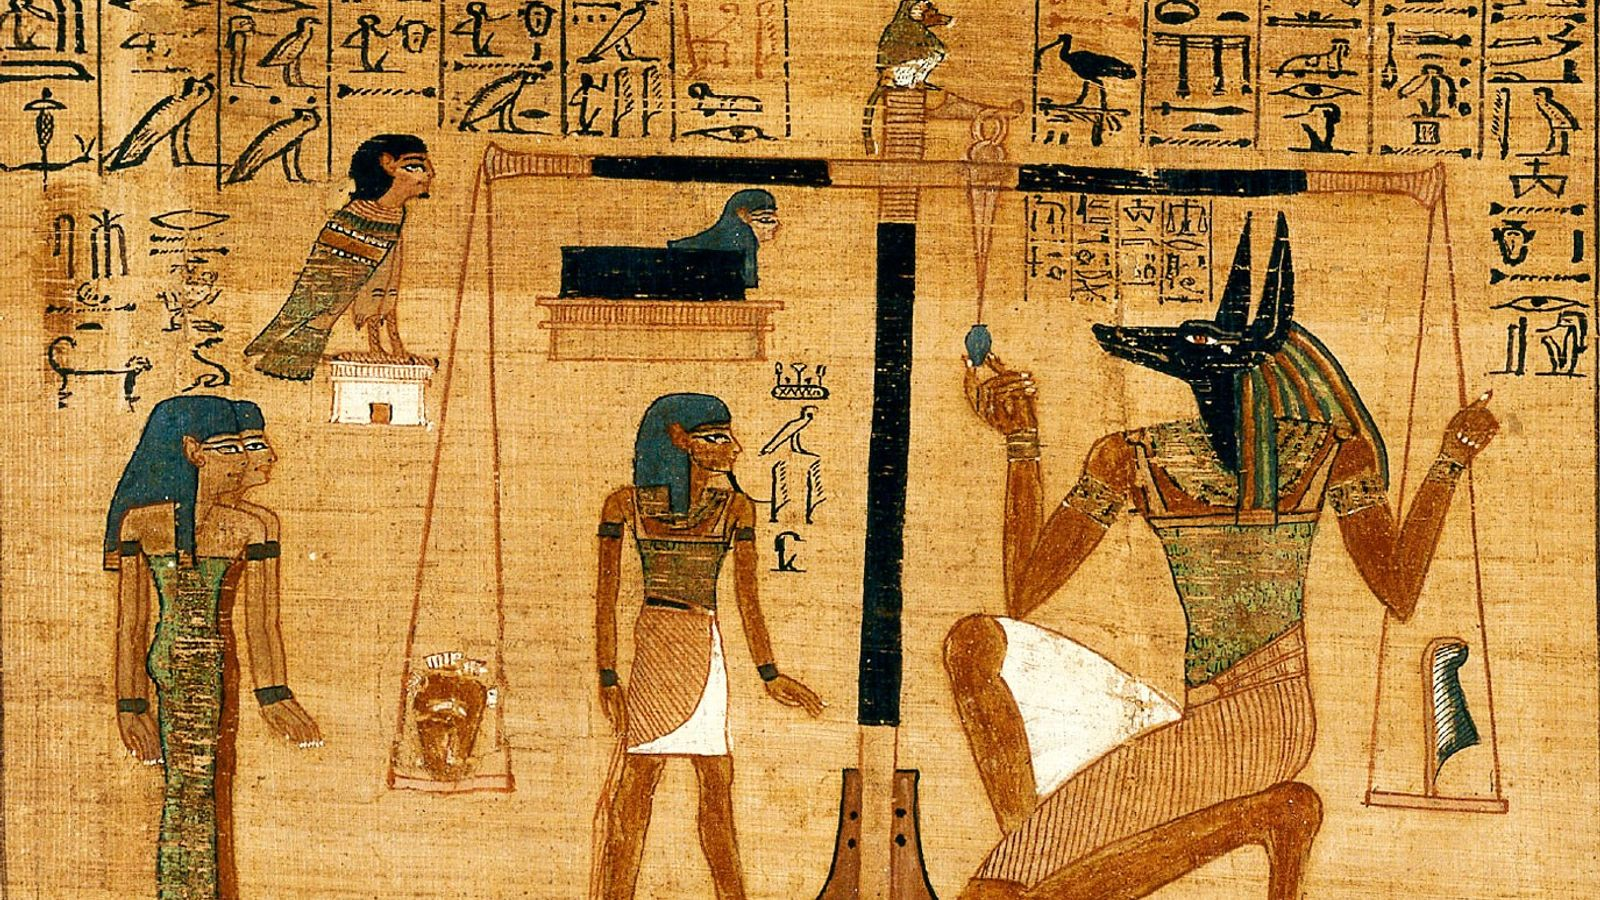 Ani's soul, represented by a bird with a human head, observes as Anubis weighs Ani's heart ...